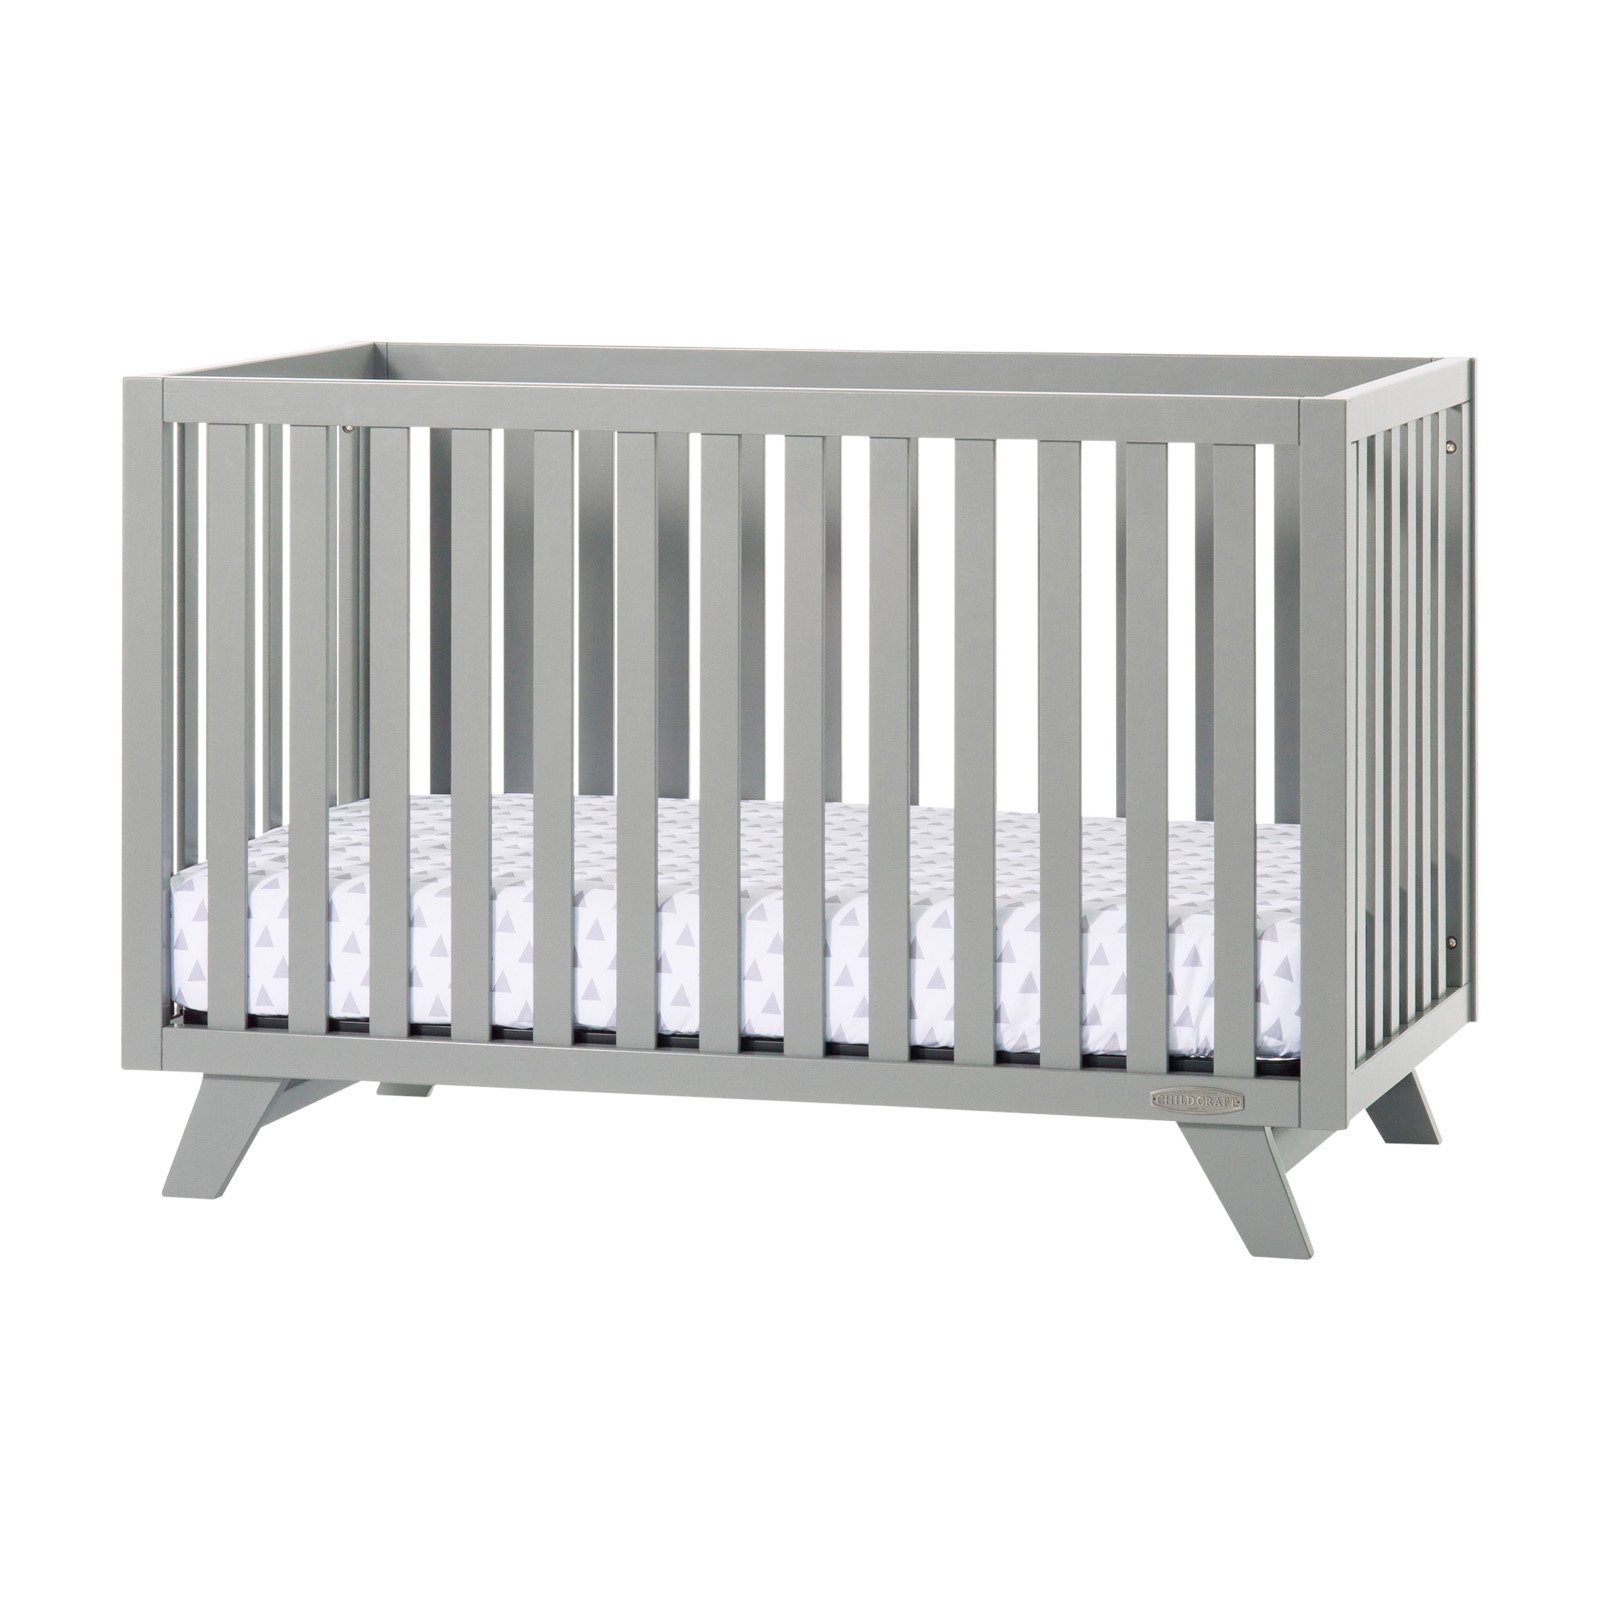 Forever Eclectic™ SOHO 4-in-1 Convertible Crib, Gray